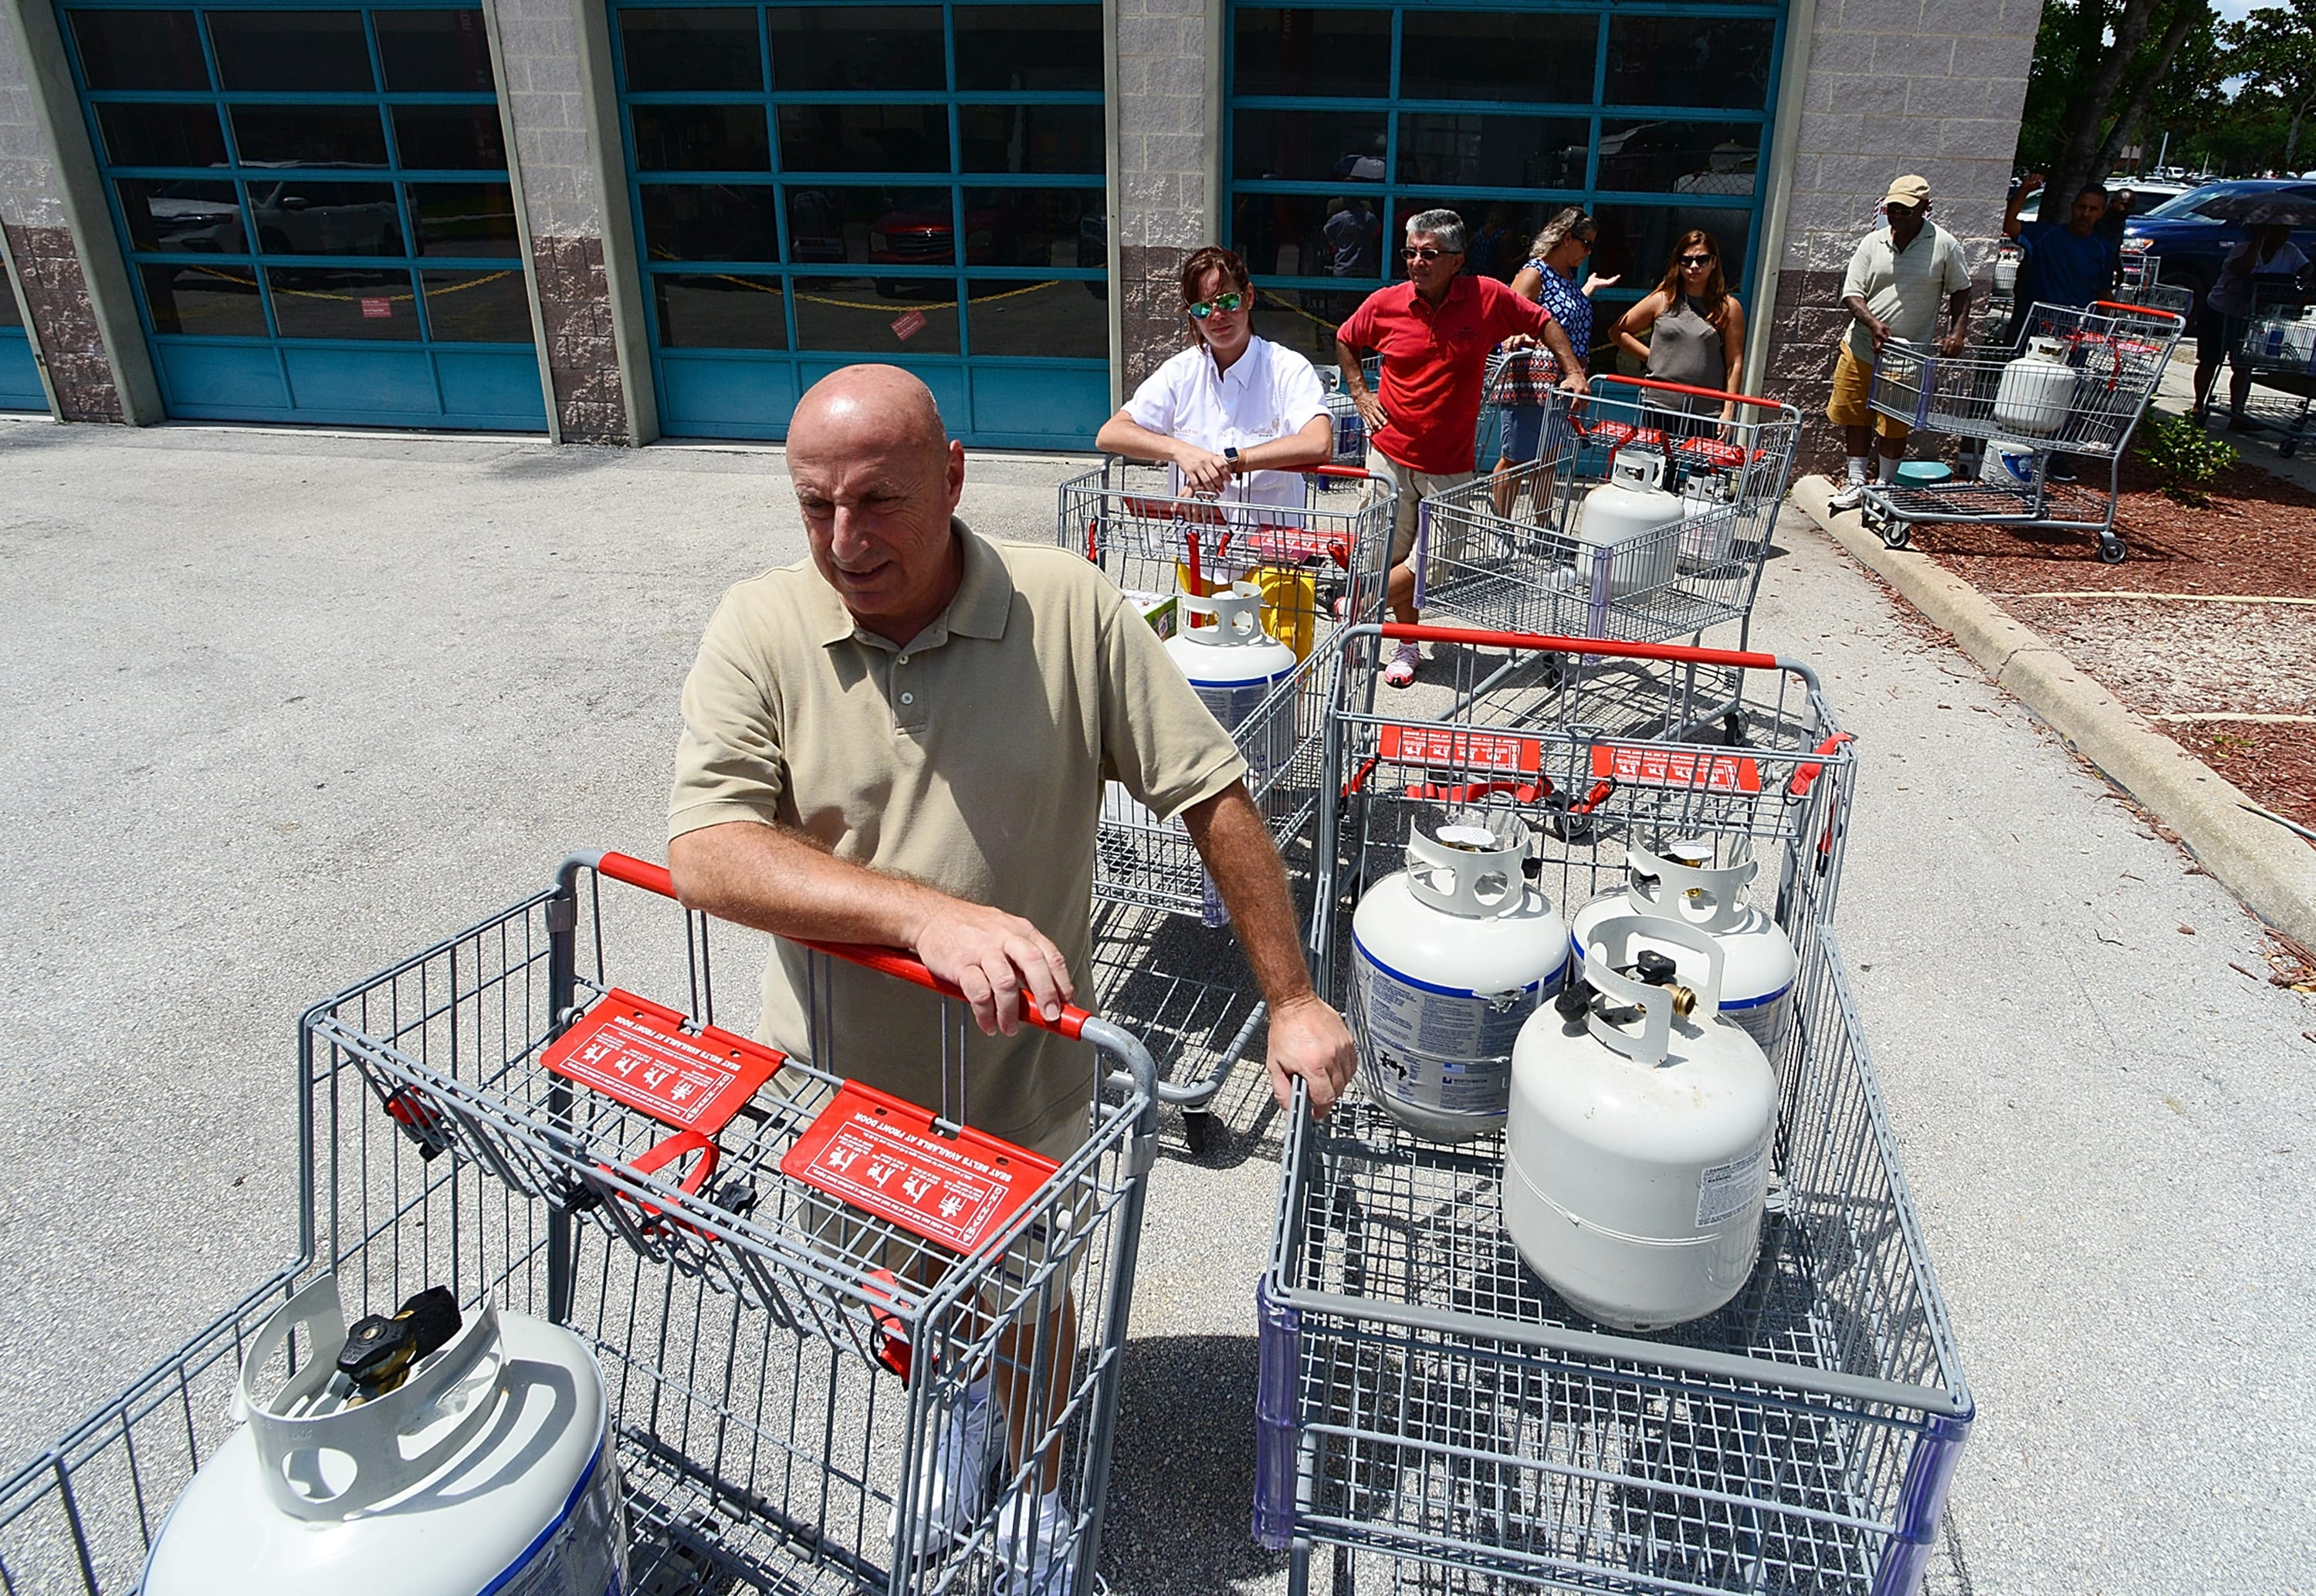 Hurricane Dorian has Florida residents scrambling for gas and water